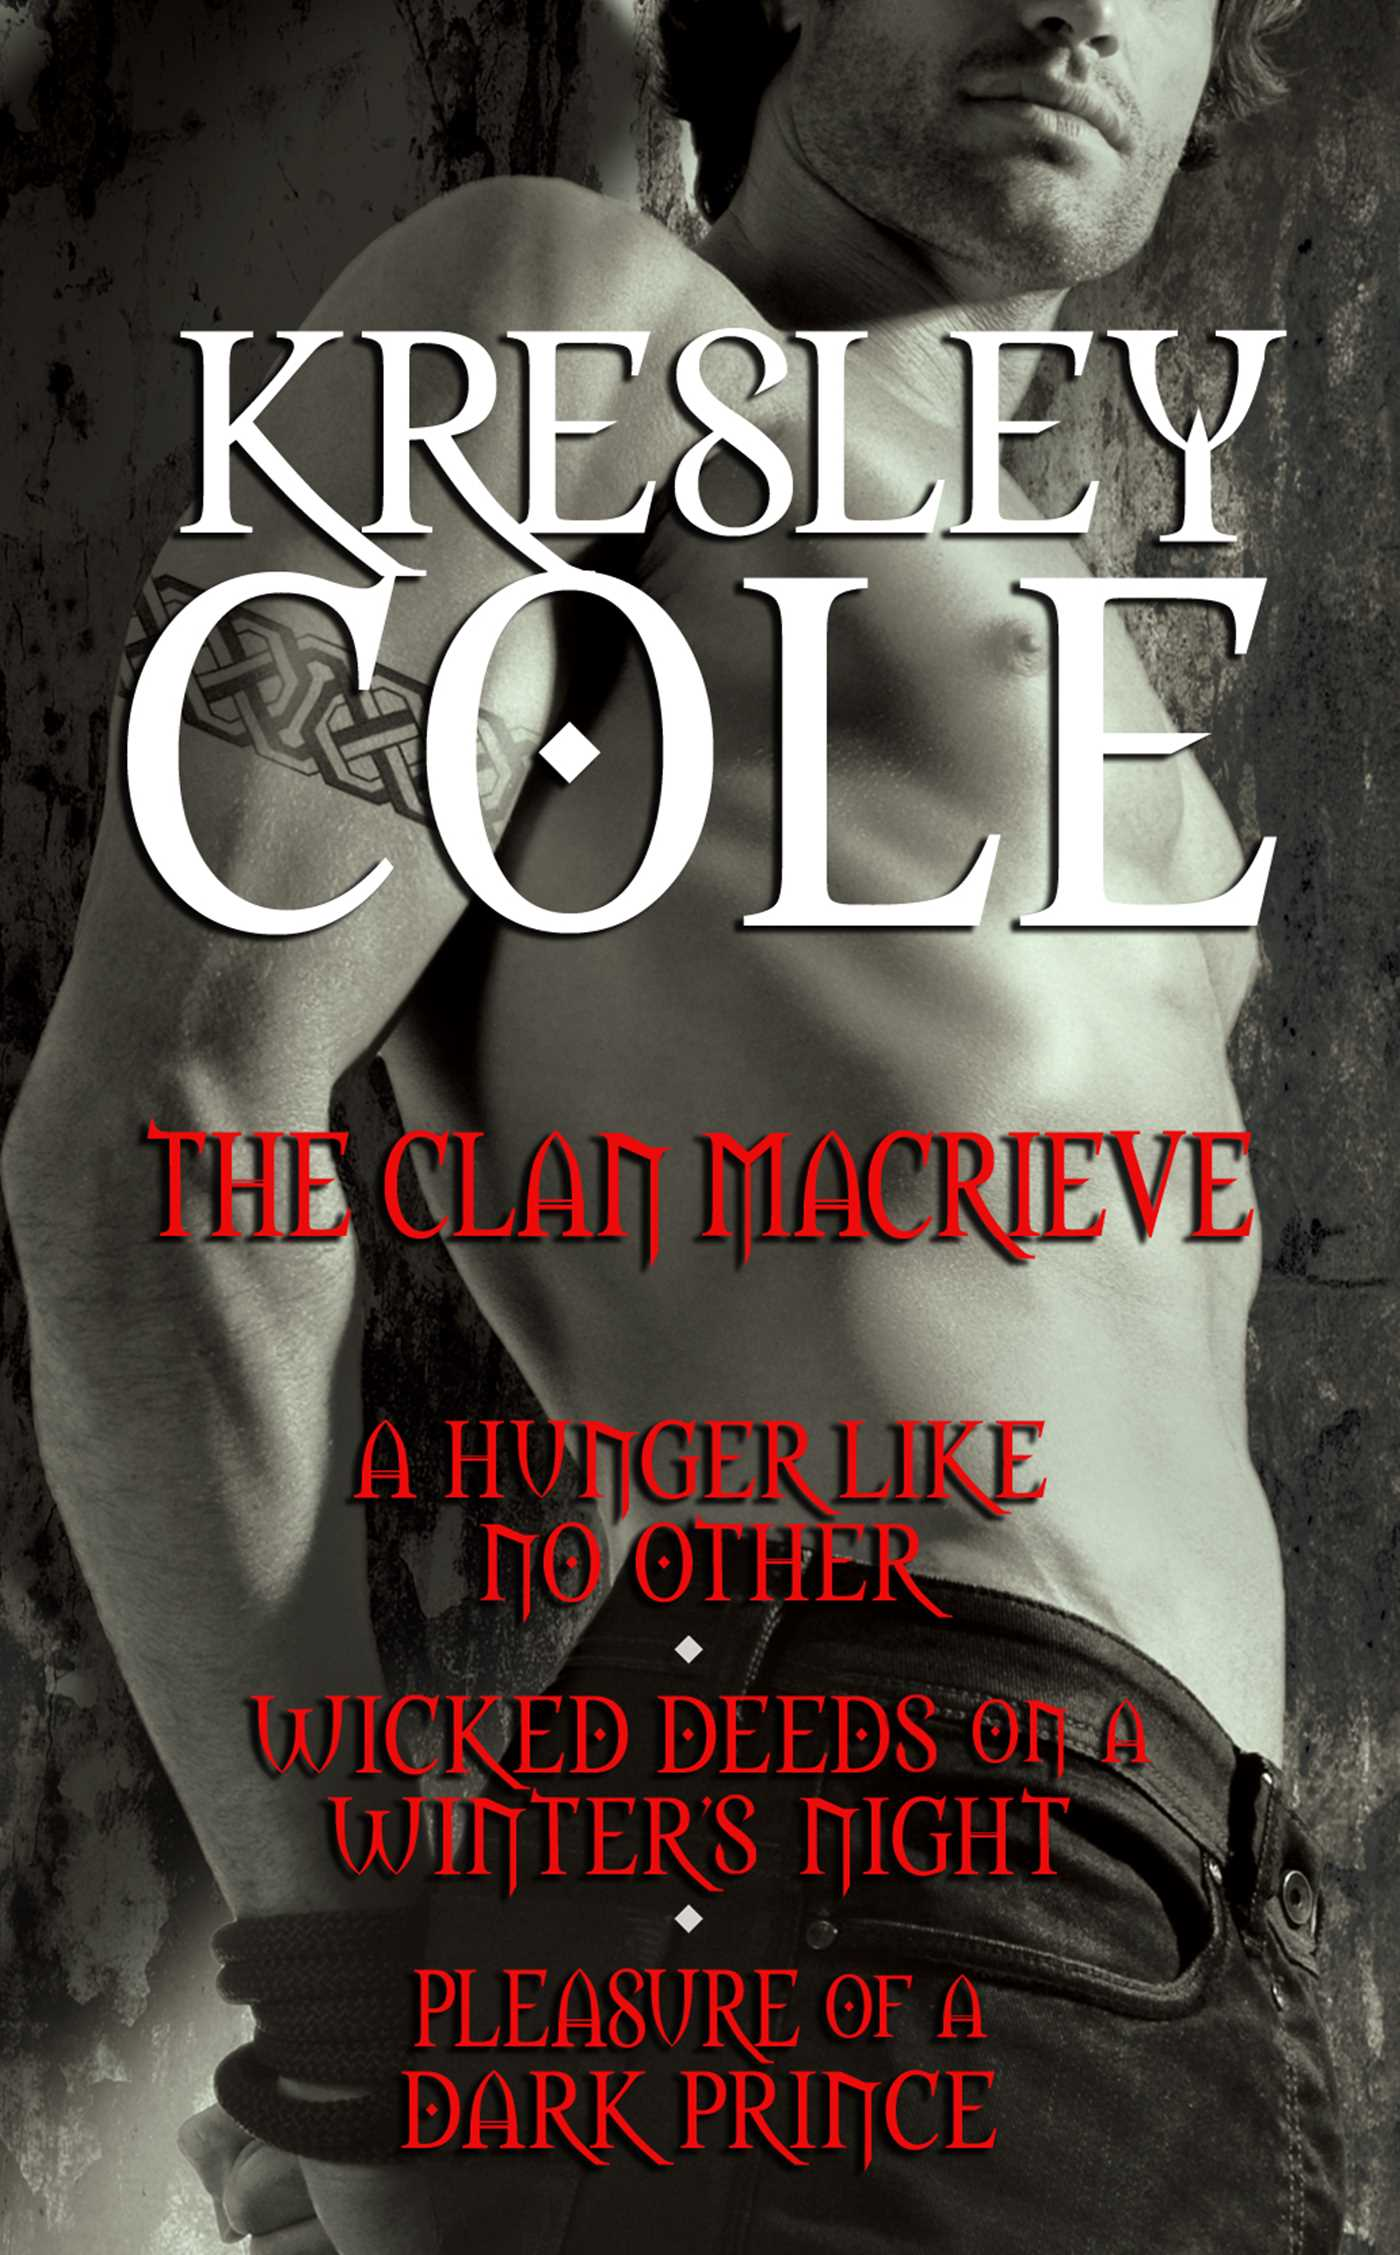 Kresley cole immortals after dark the clan macrieve 9781451640151 hr